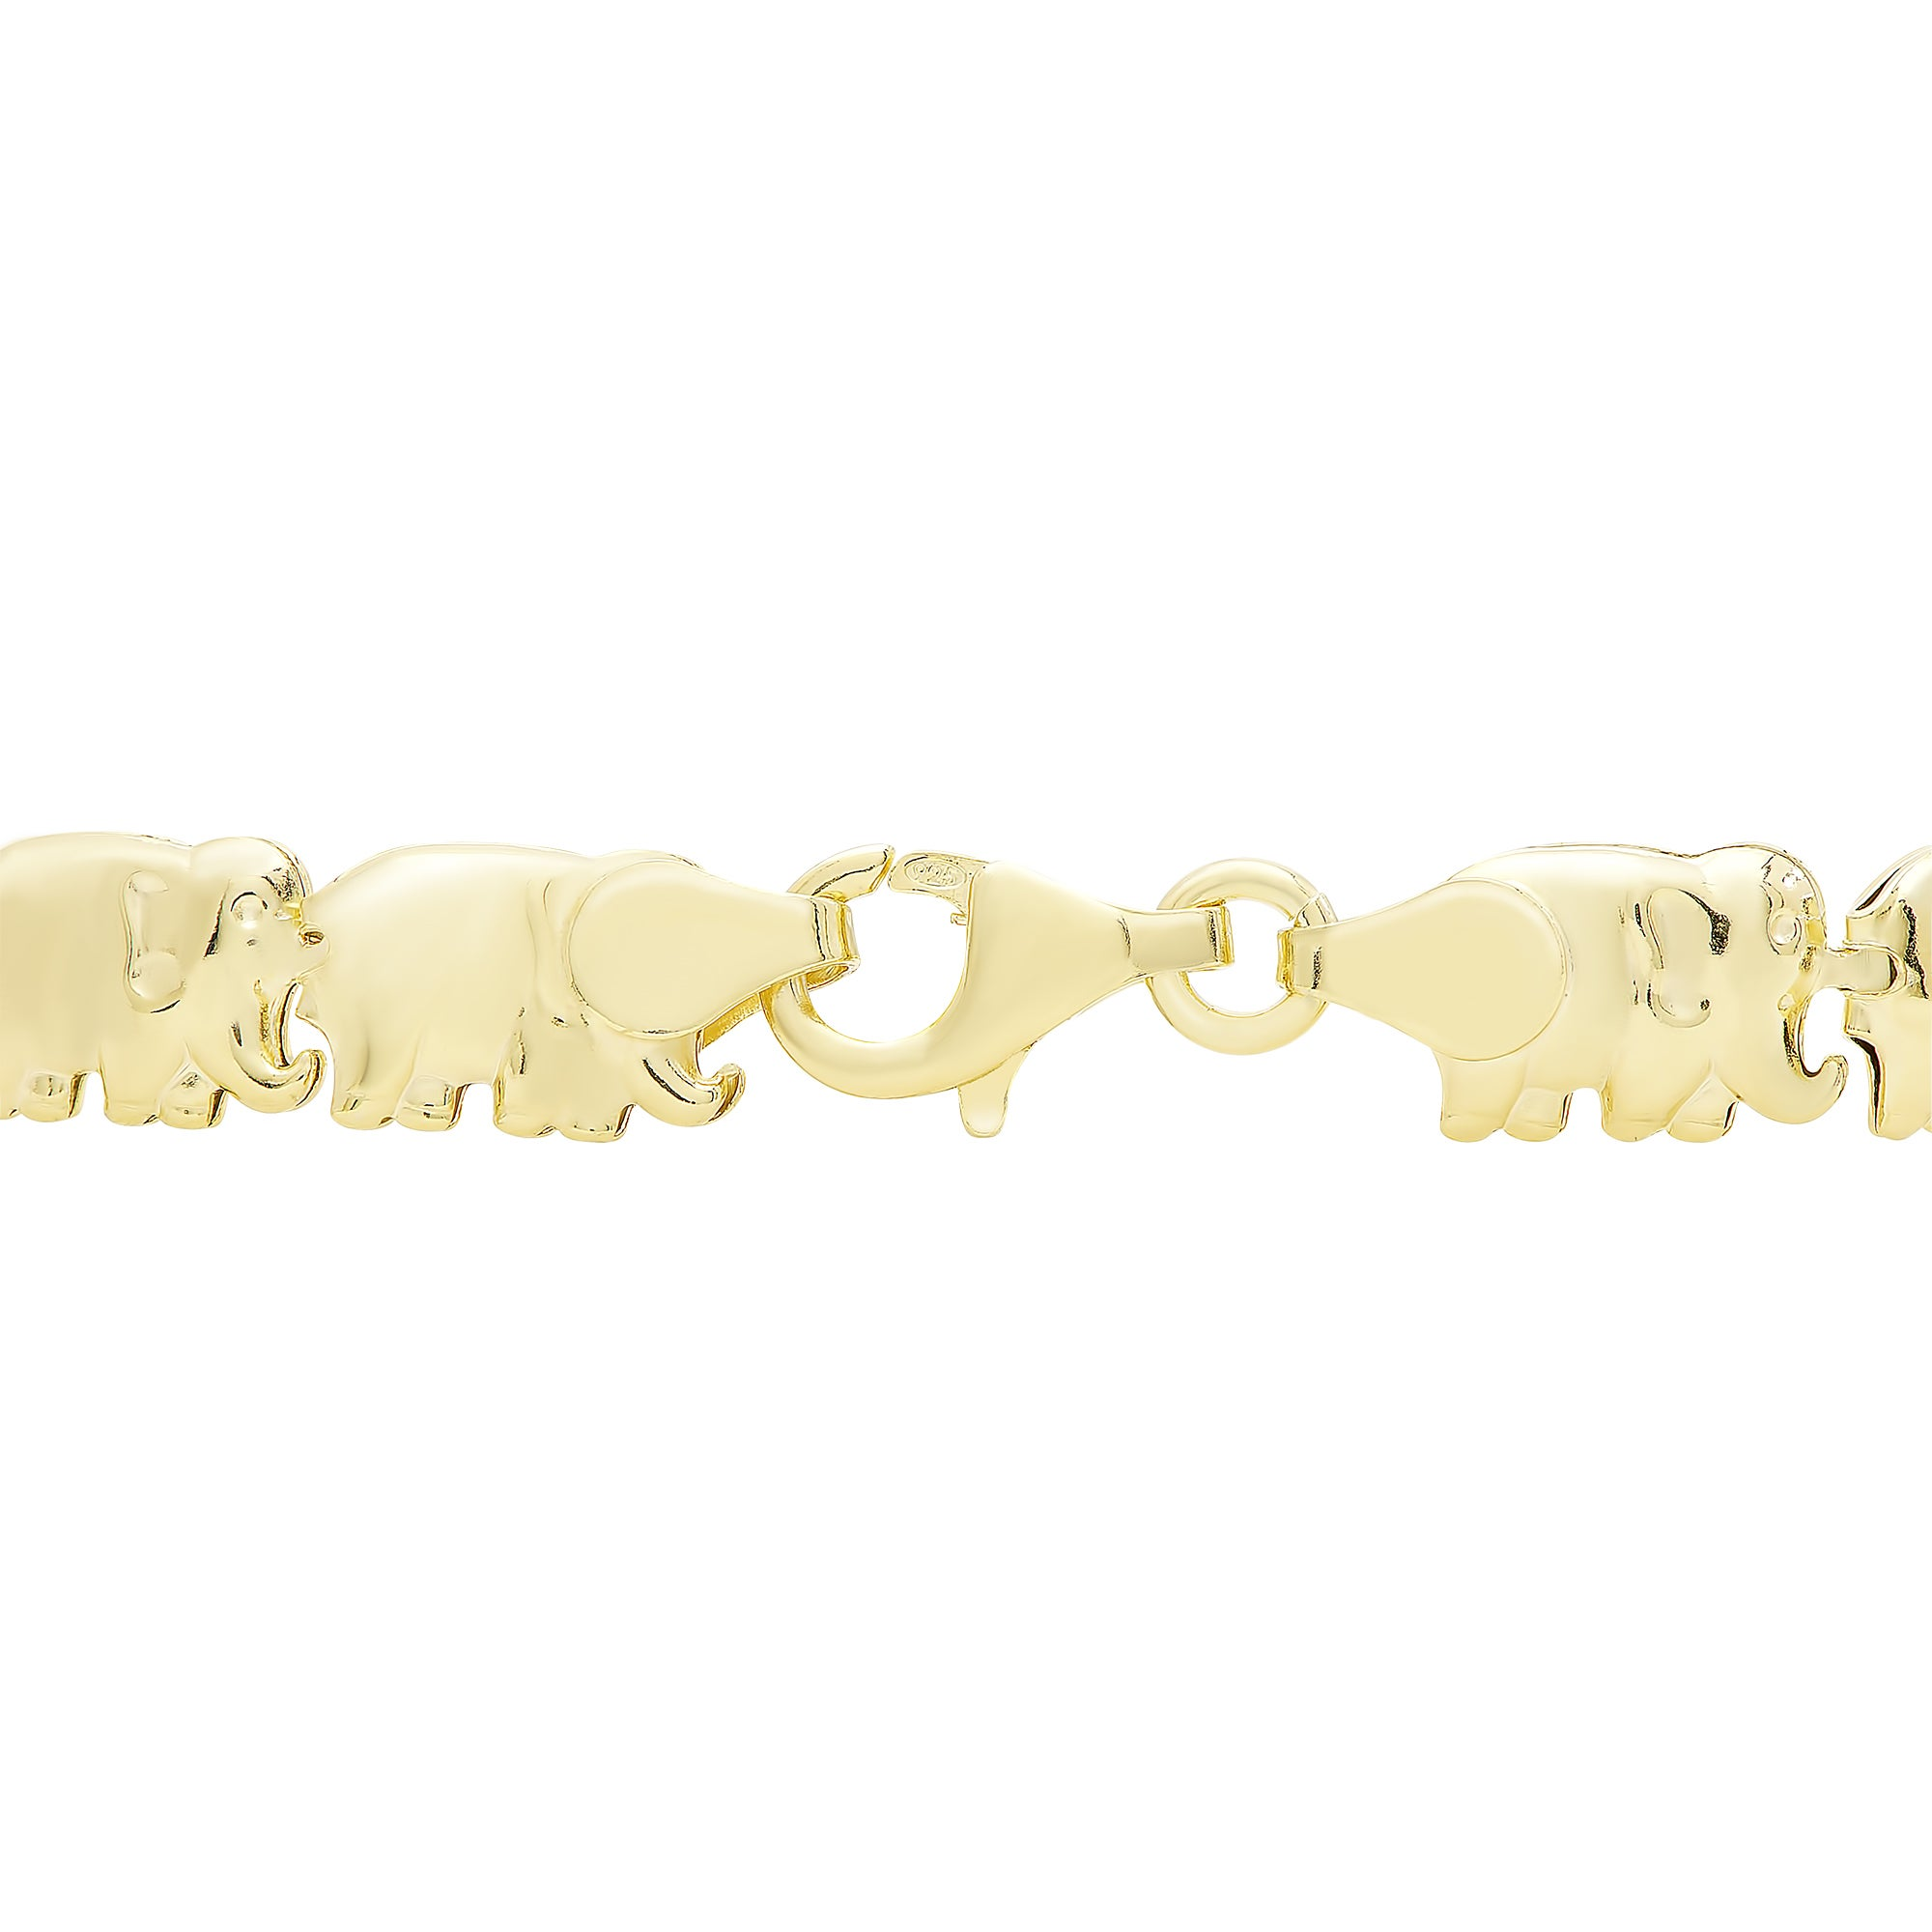 monk poms gold design house braclet heavenbracelet bracelet heaven fix products